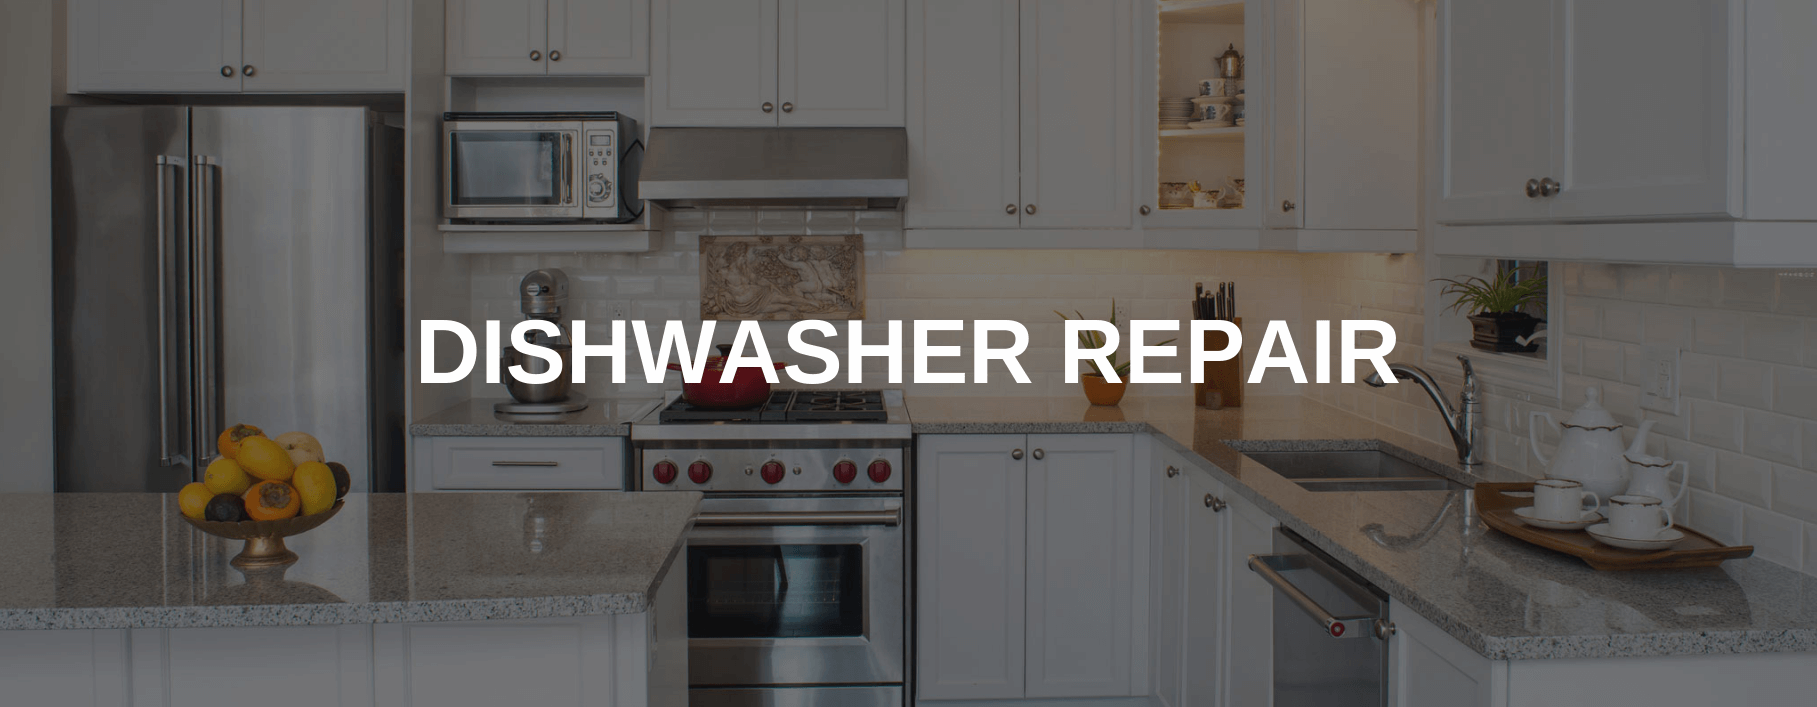 dishwasher repair pomona